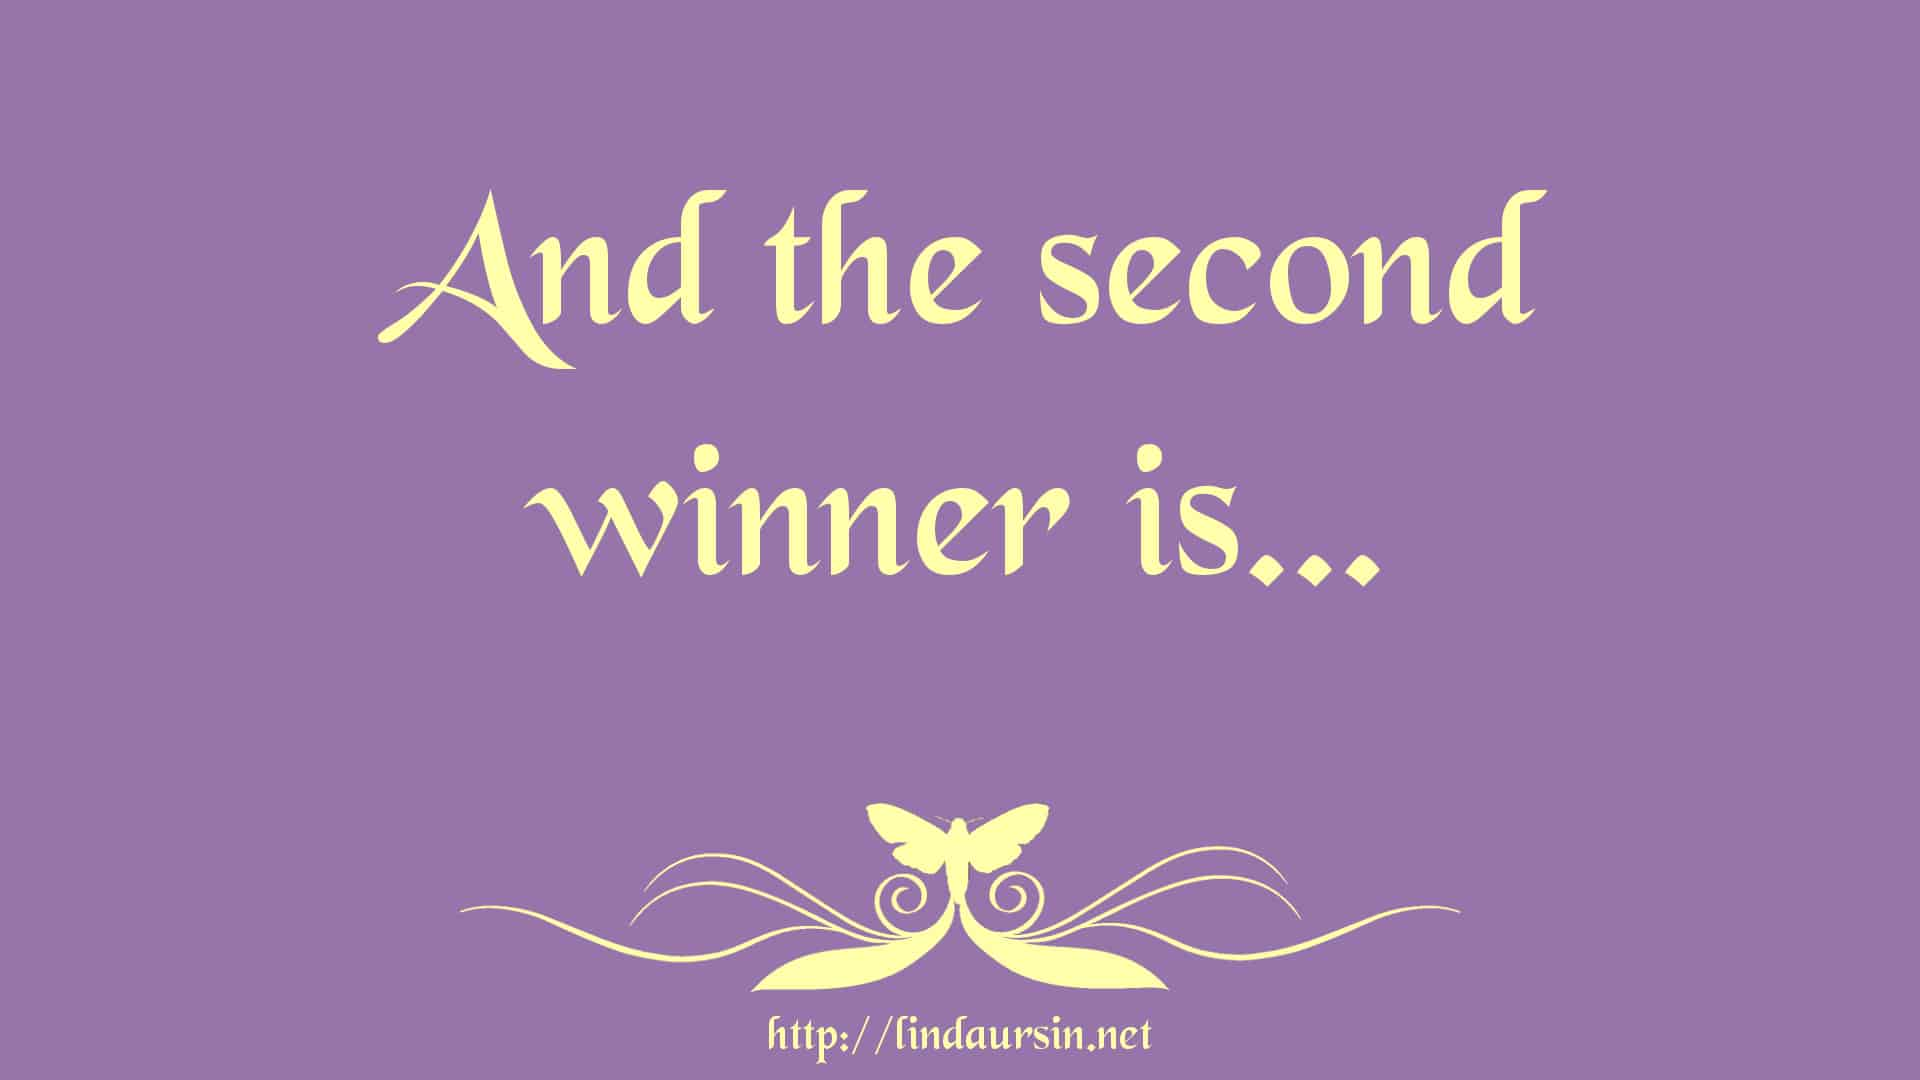 And the second winner is…